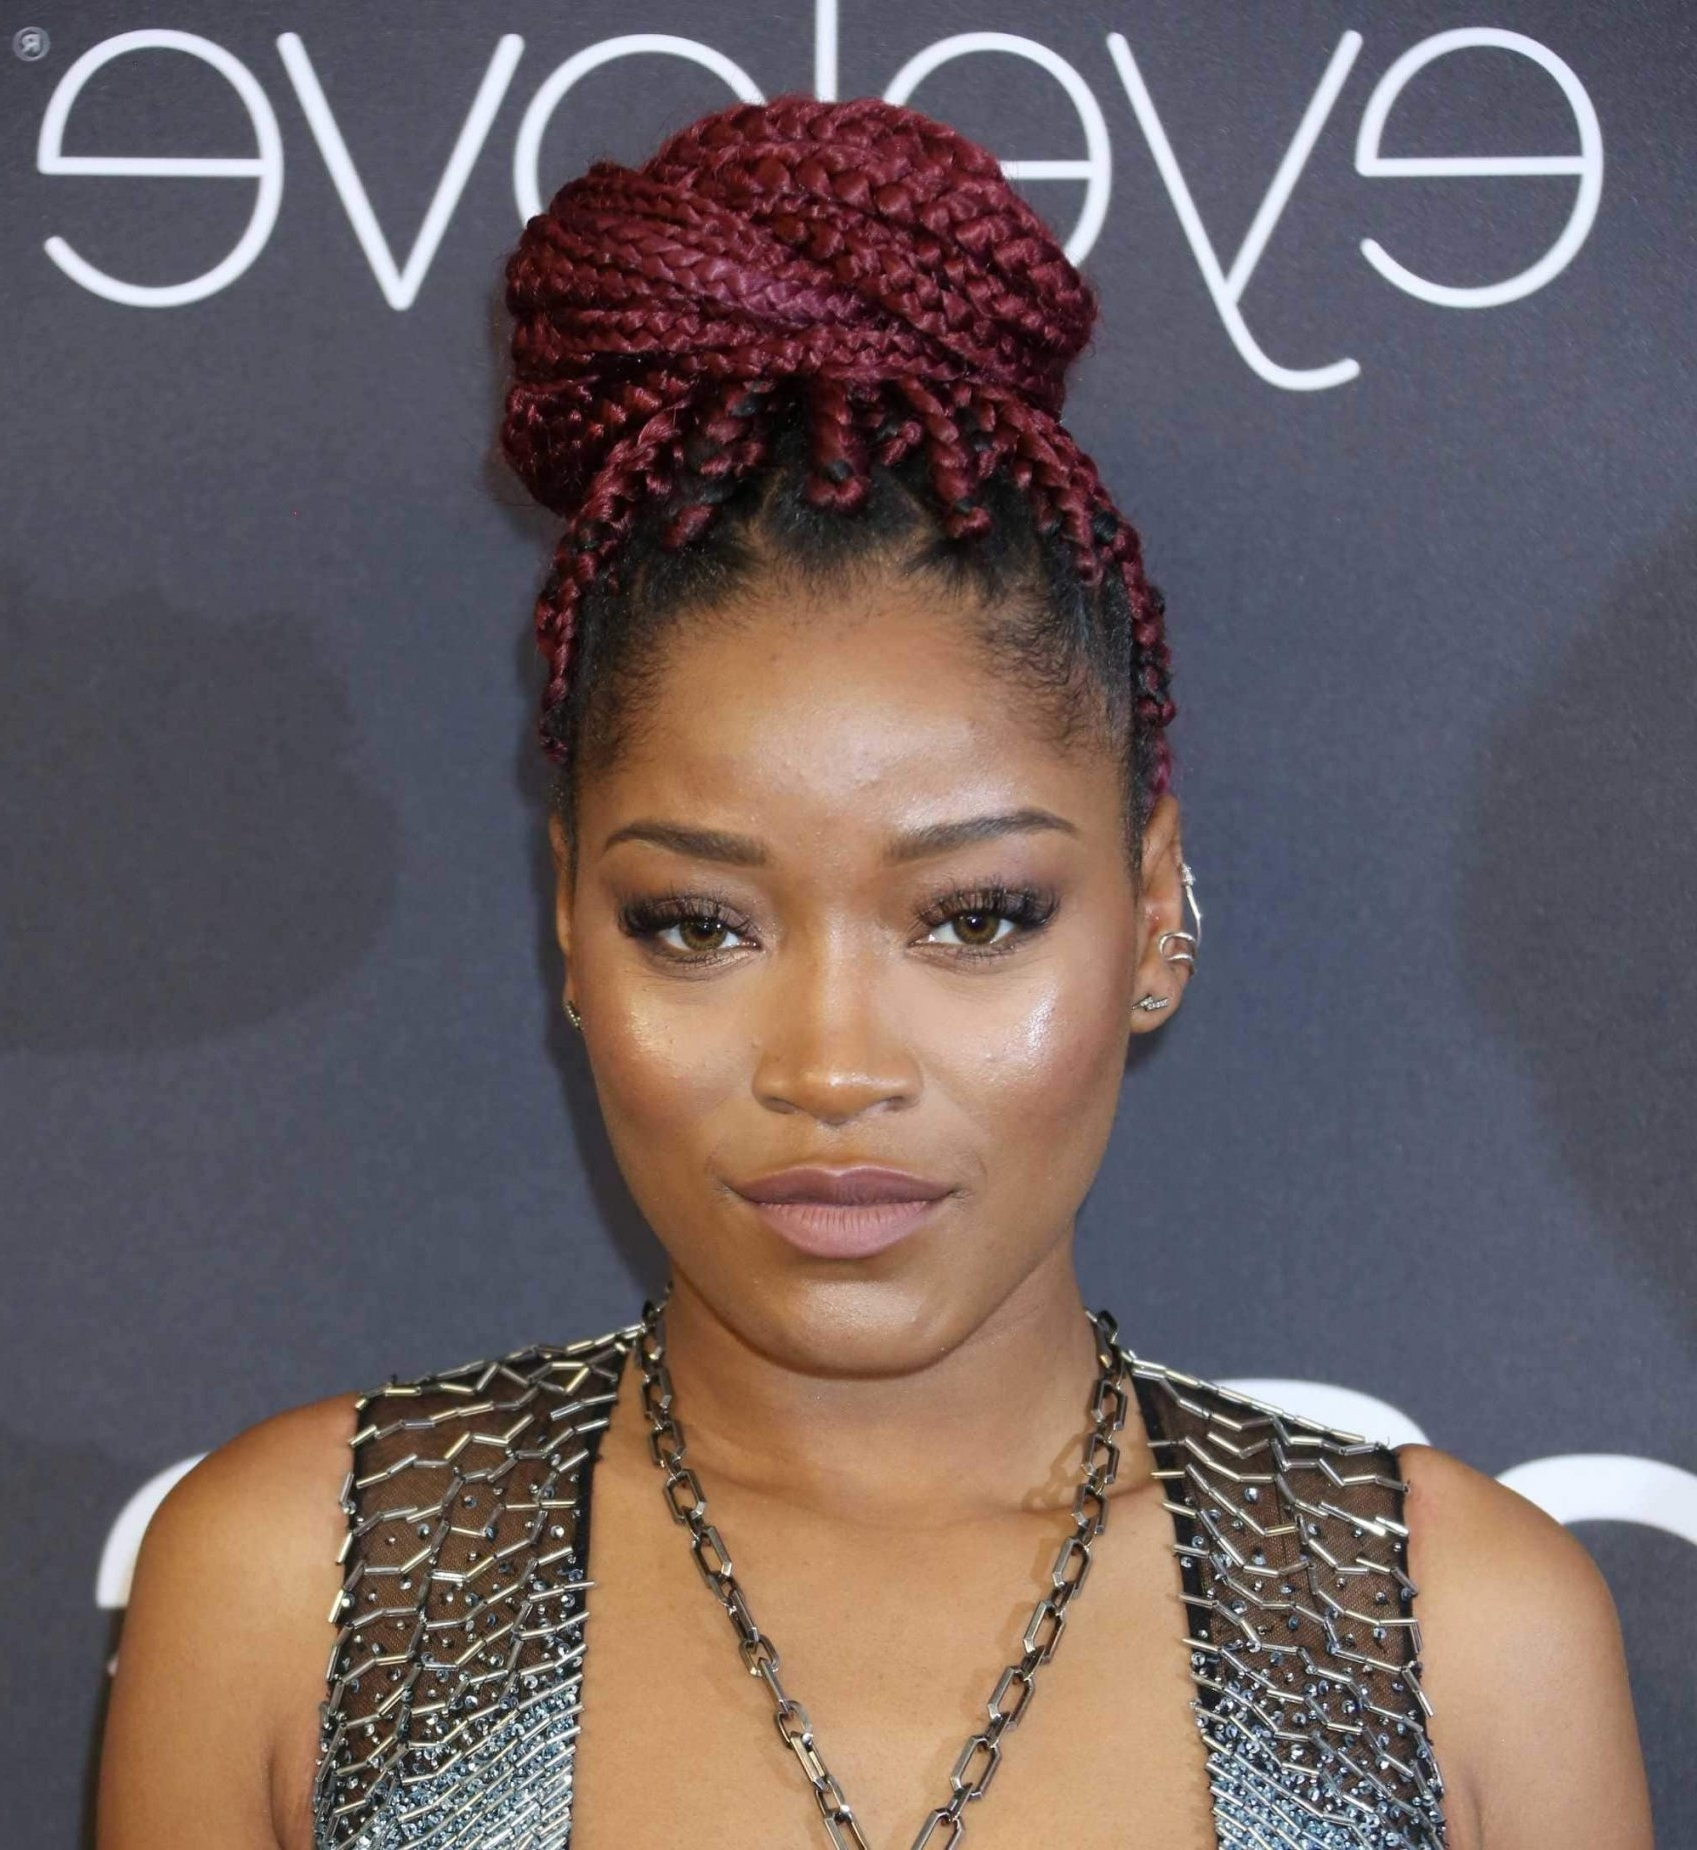 Box Braids: Hairstyles To Inspire Your Next Look Within Best With Most Recent Box Braids Hairstyles (View 5 of 15)